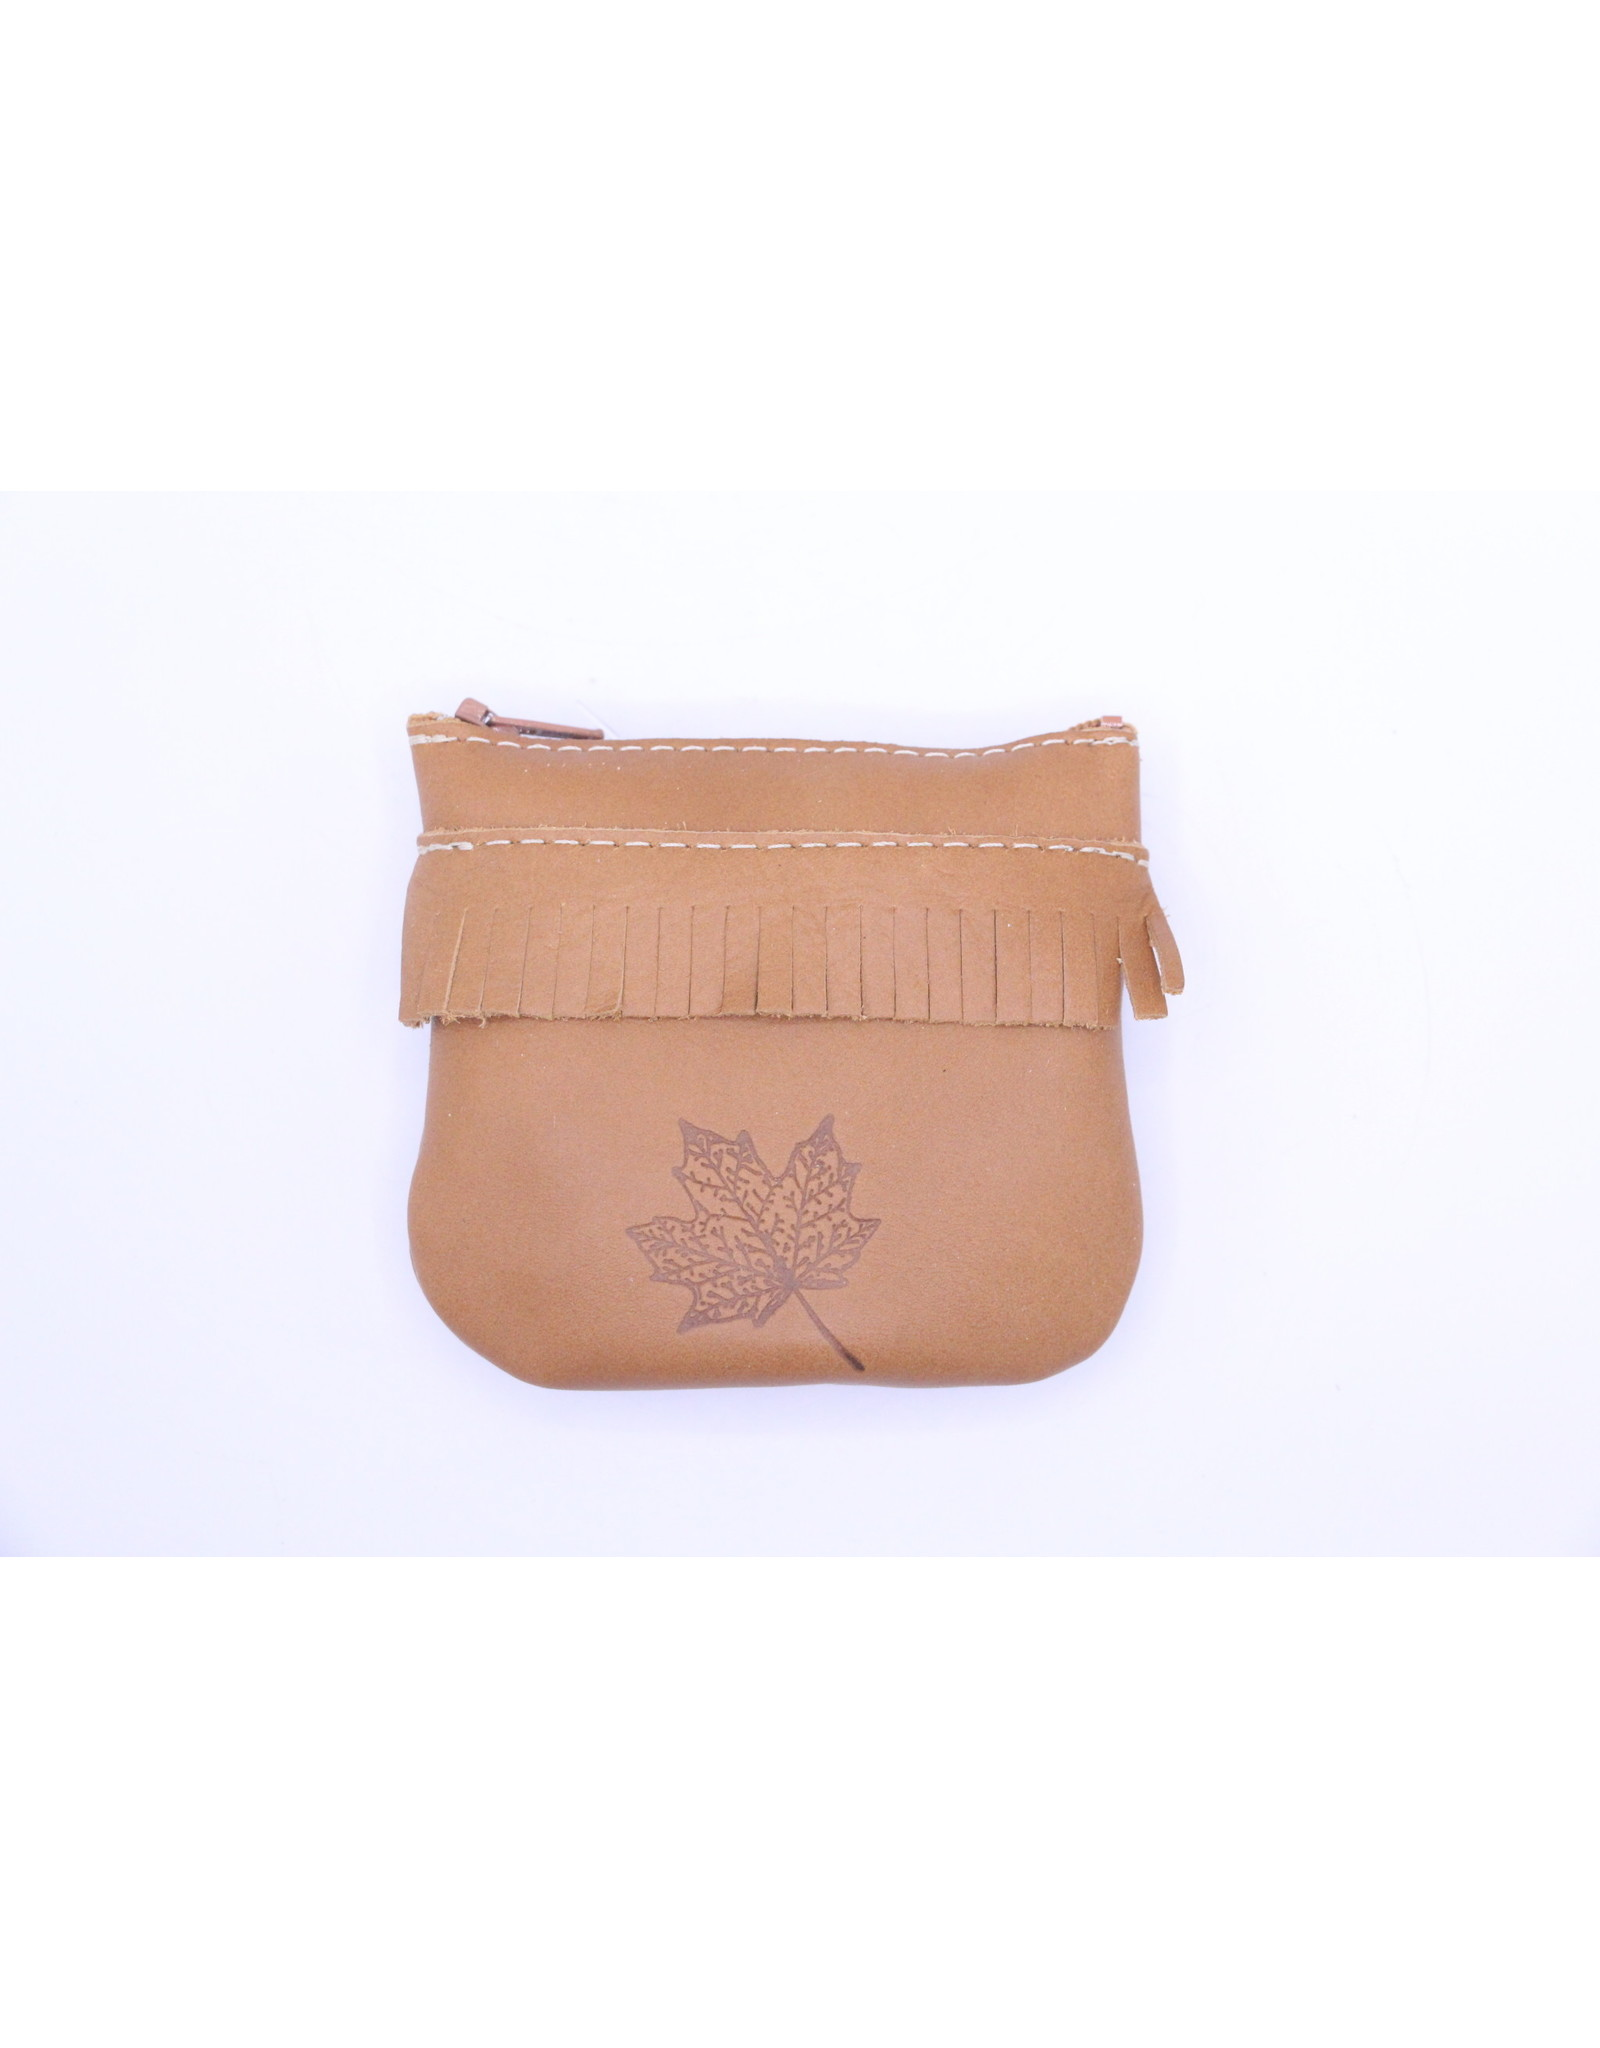 Small Leather Coin Purse 202 Light Brown - Maple Leaf